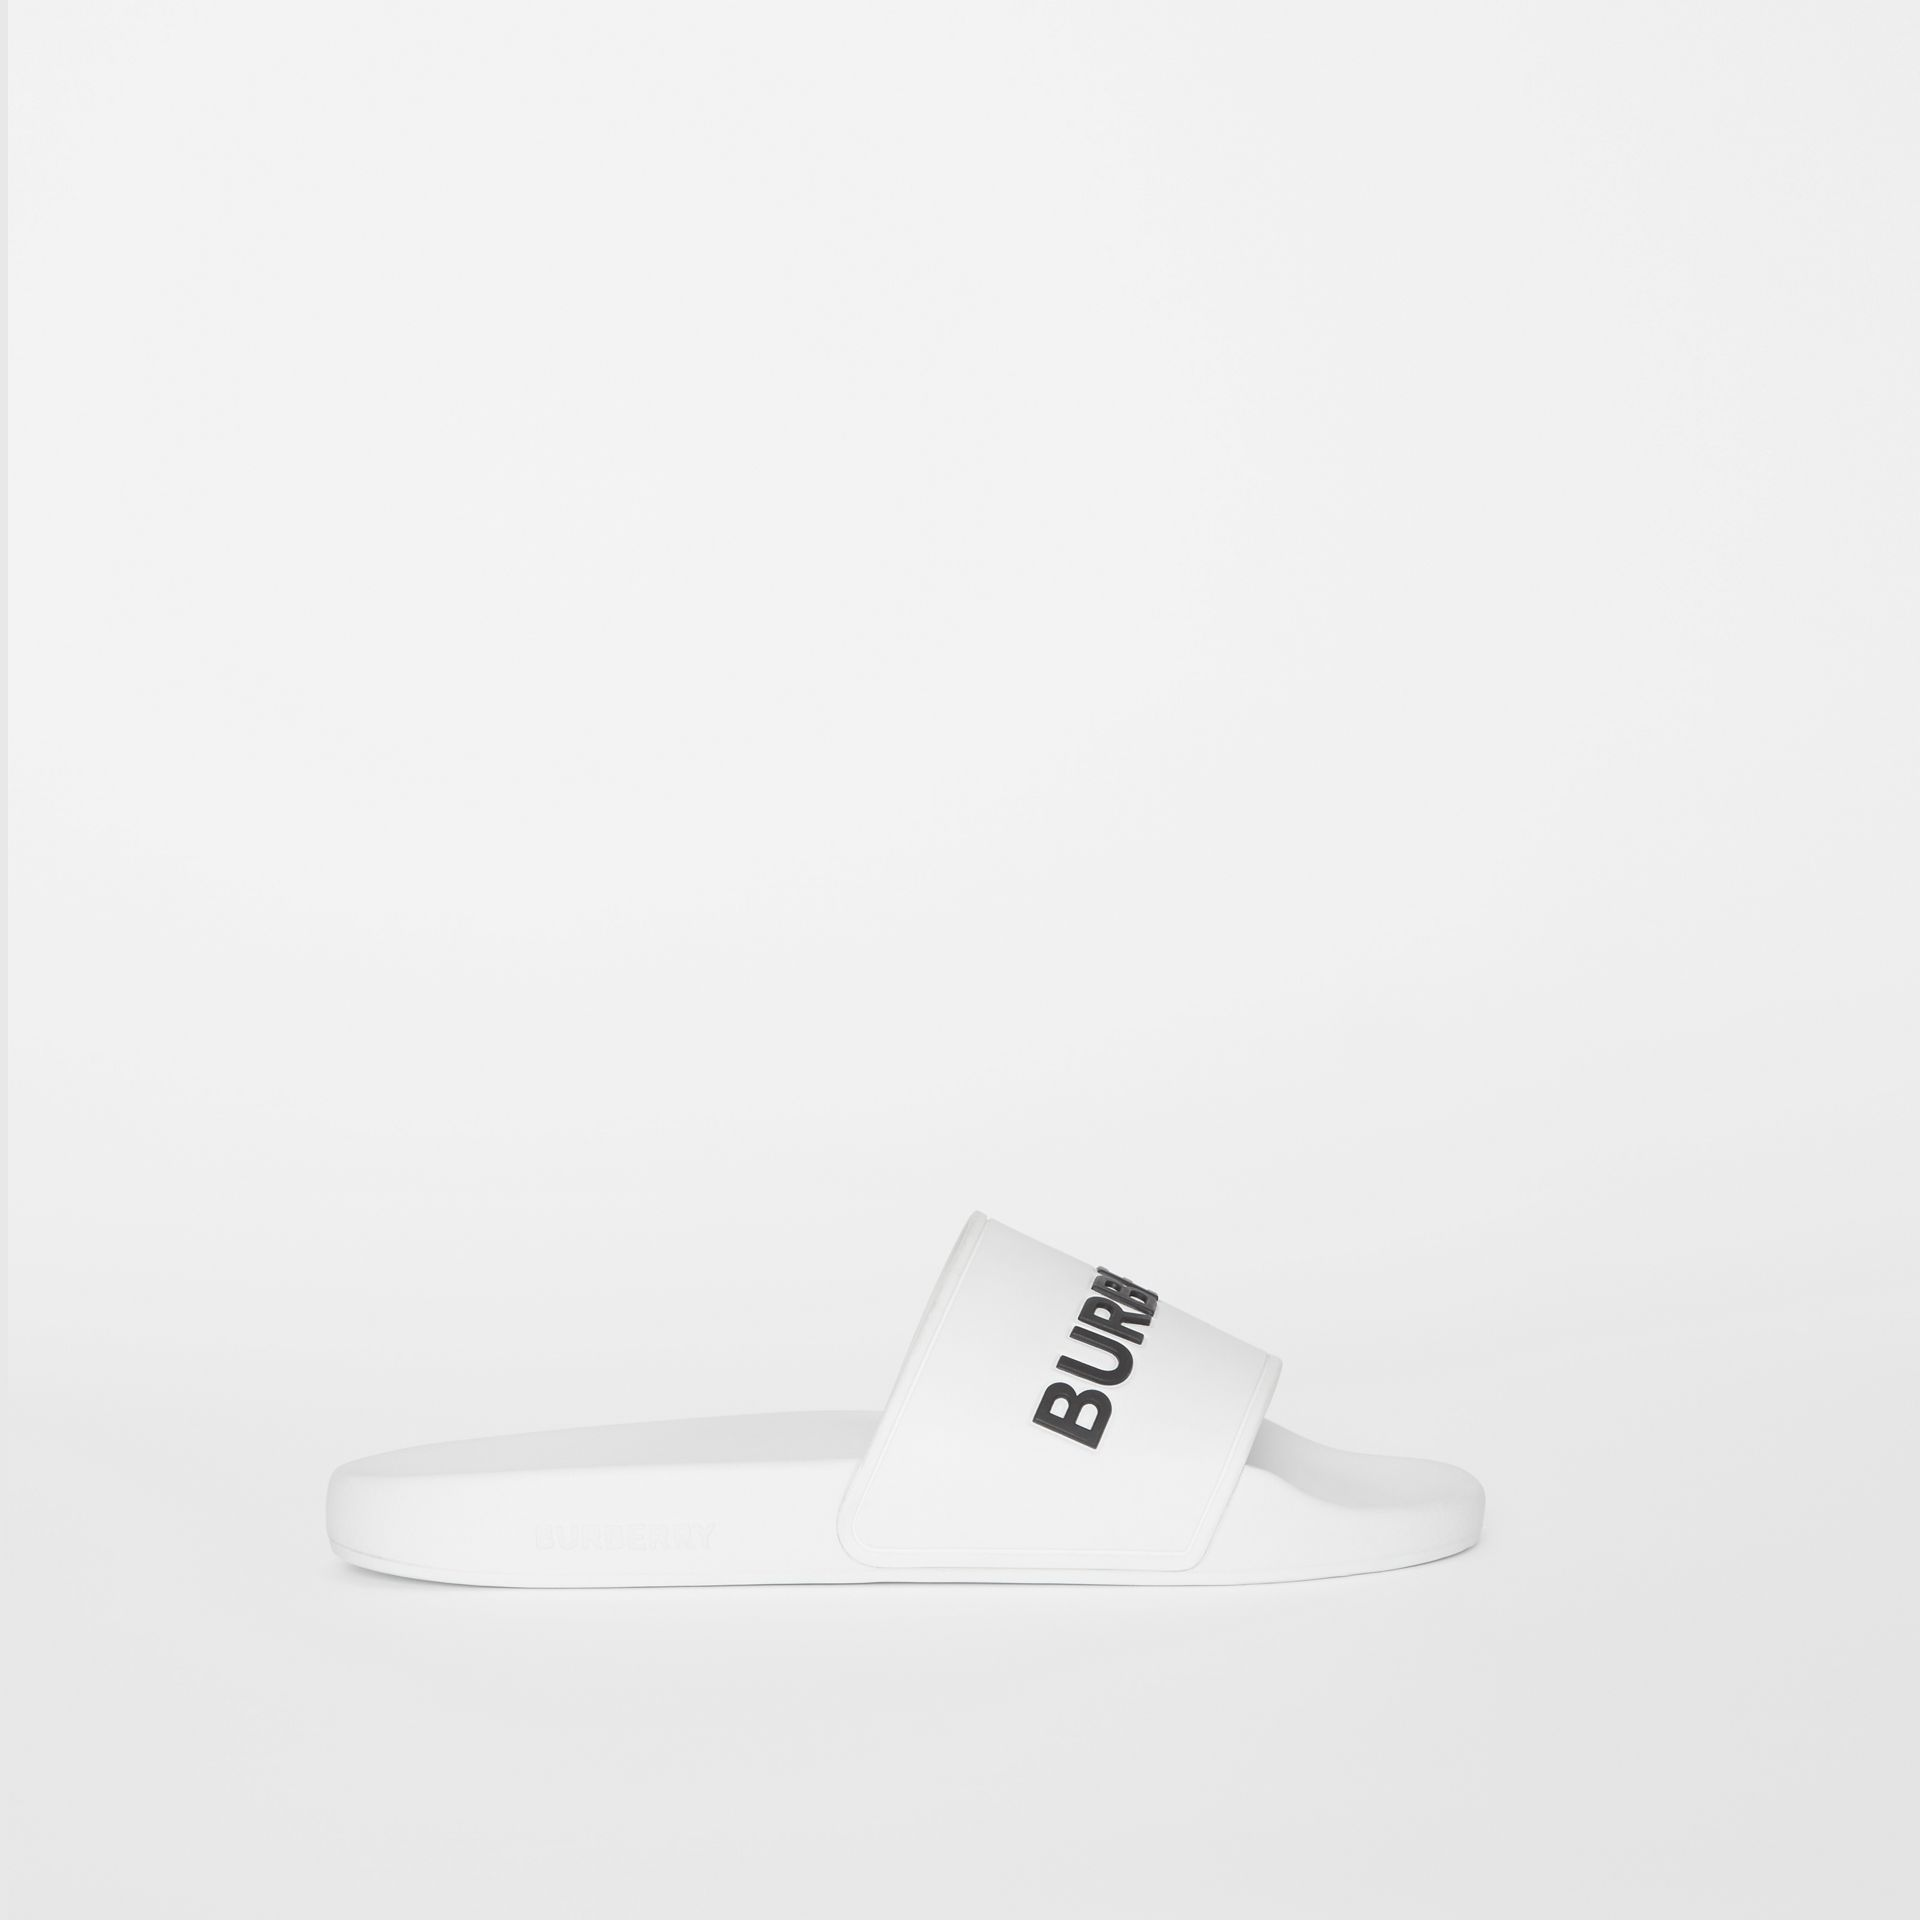 Kingdom Motif Slides in Optic White/black - Men | Burberry - gallery image 4